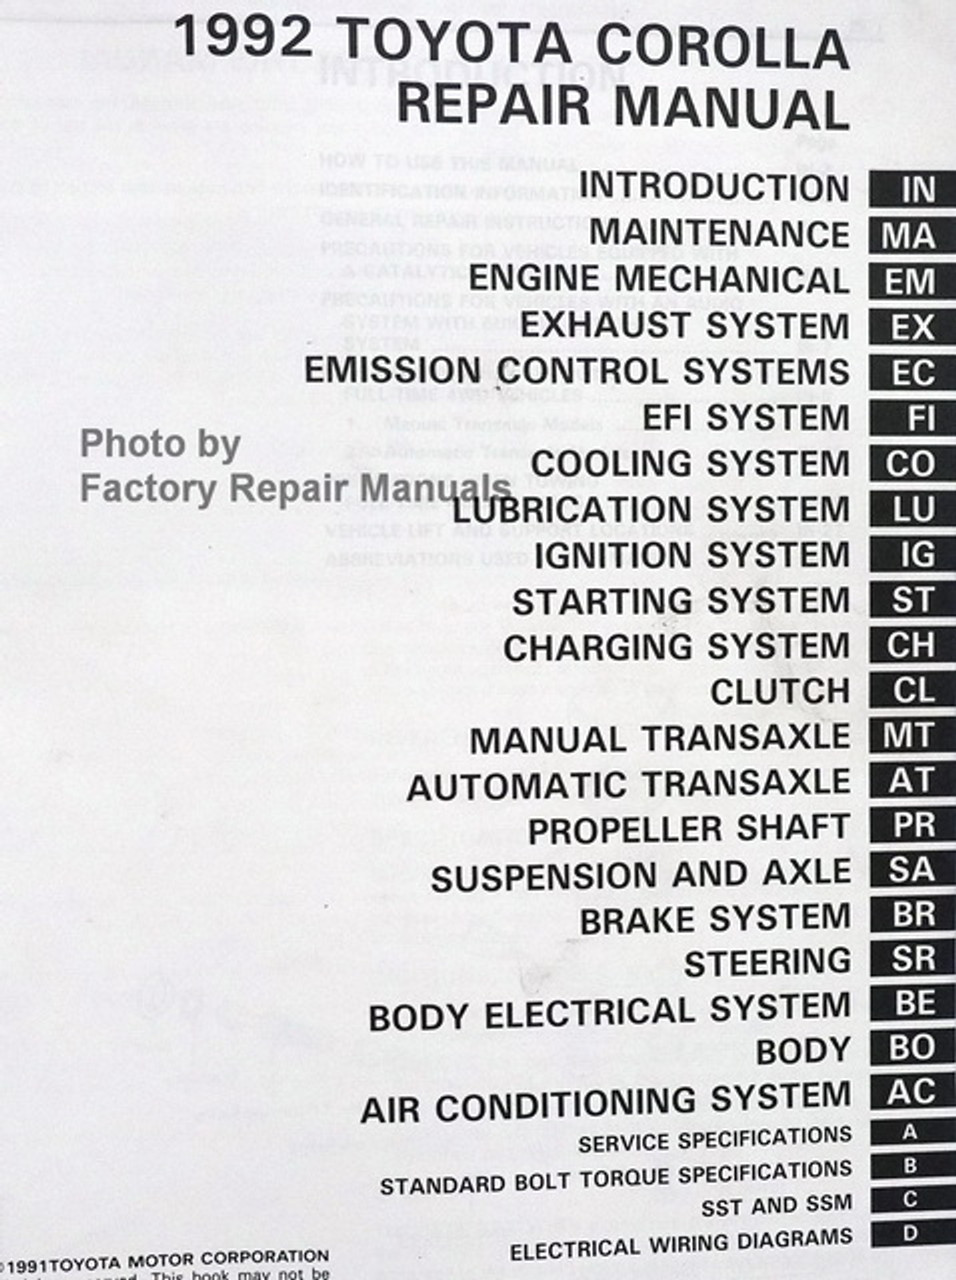 1992 Toyota Corolla Factory Service Manual Original Shop